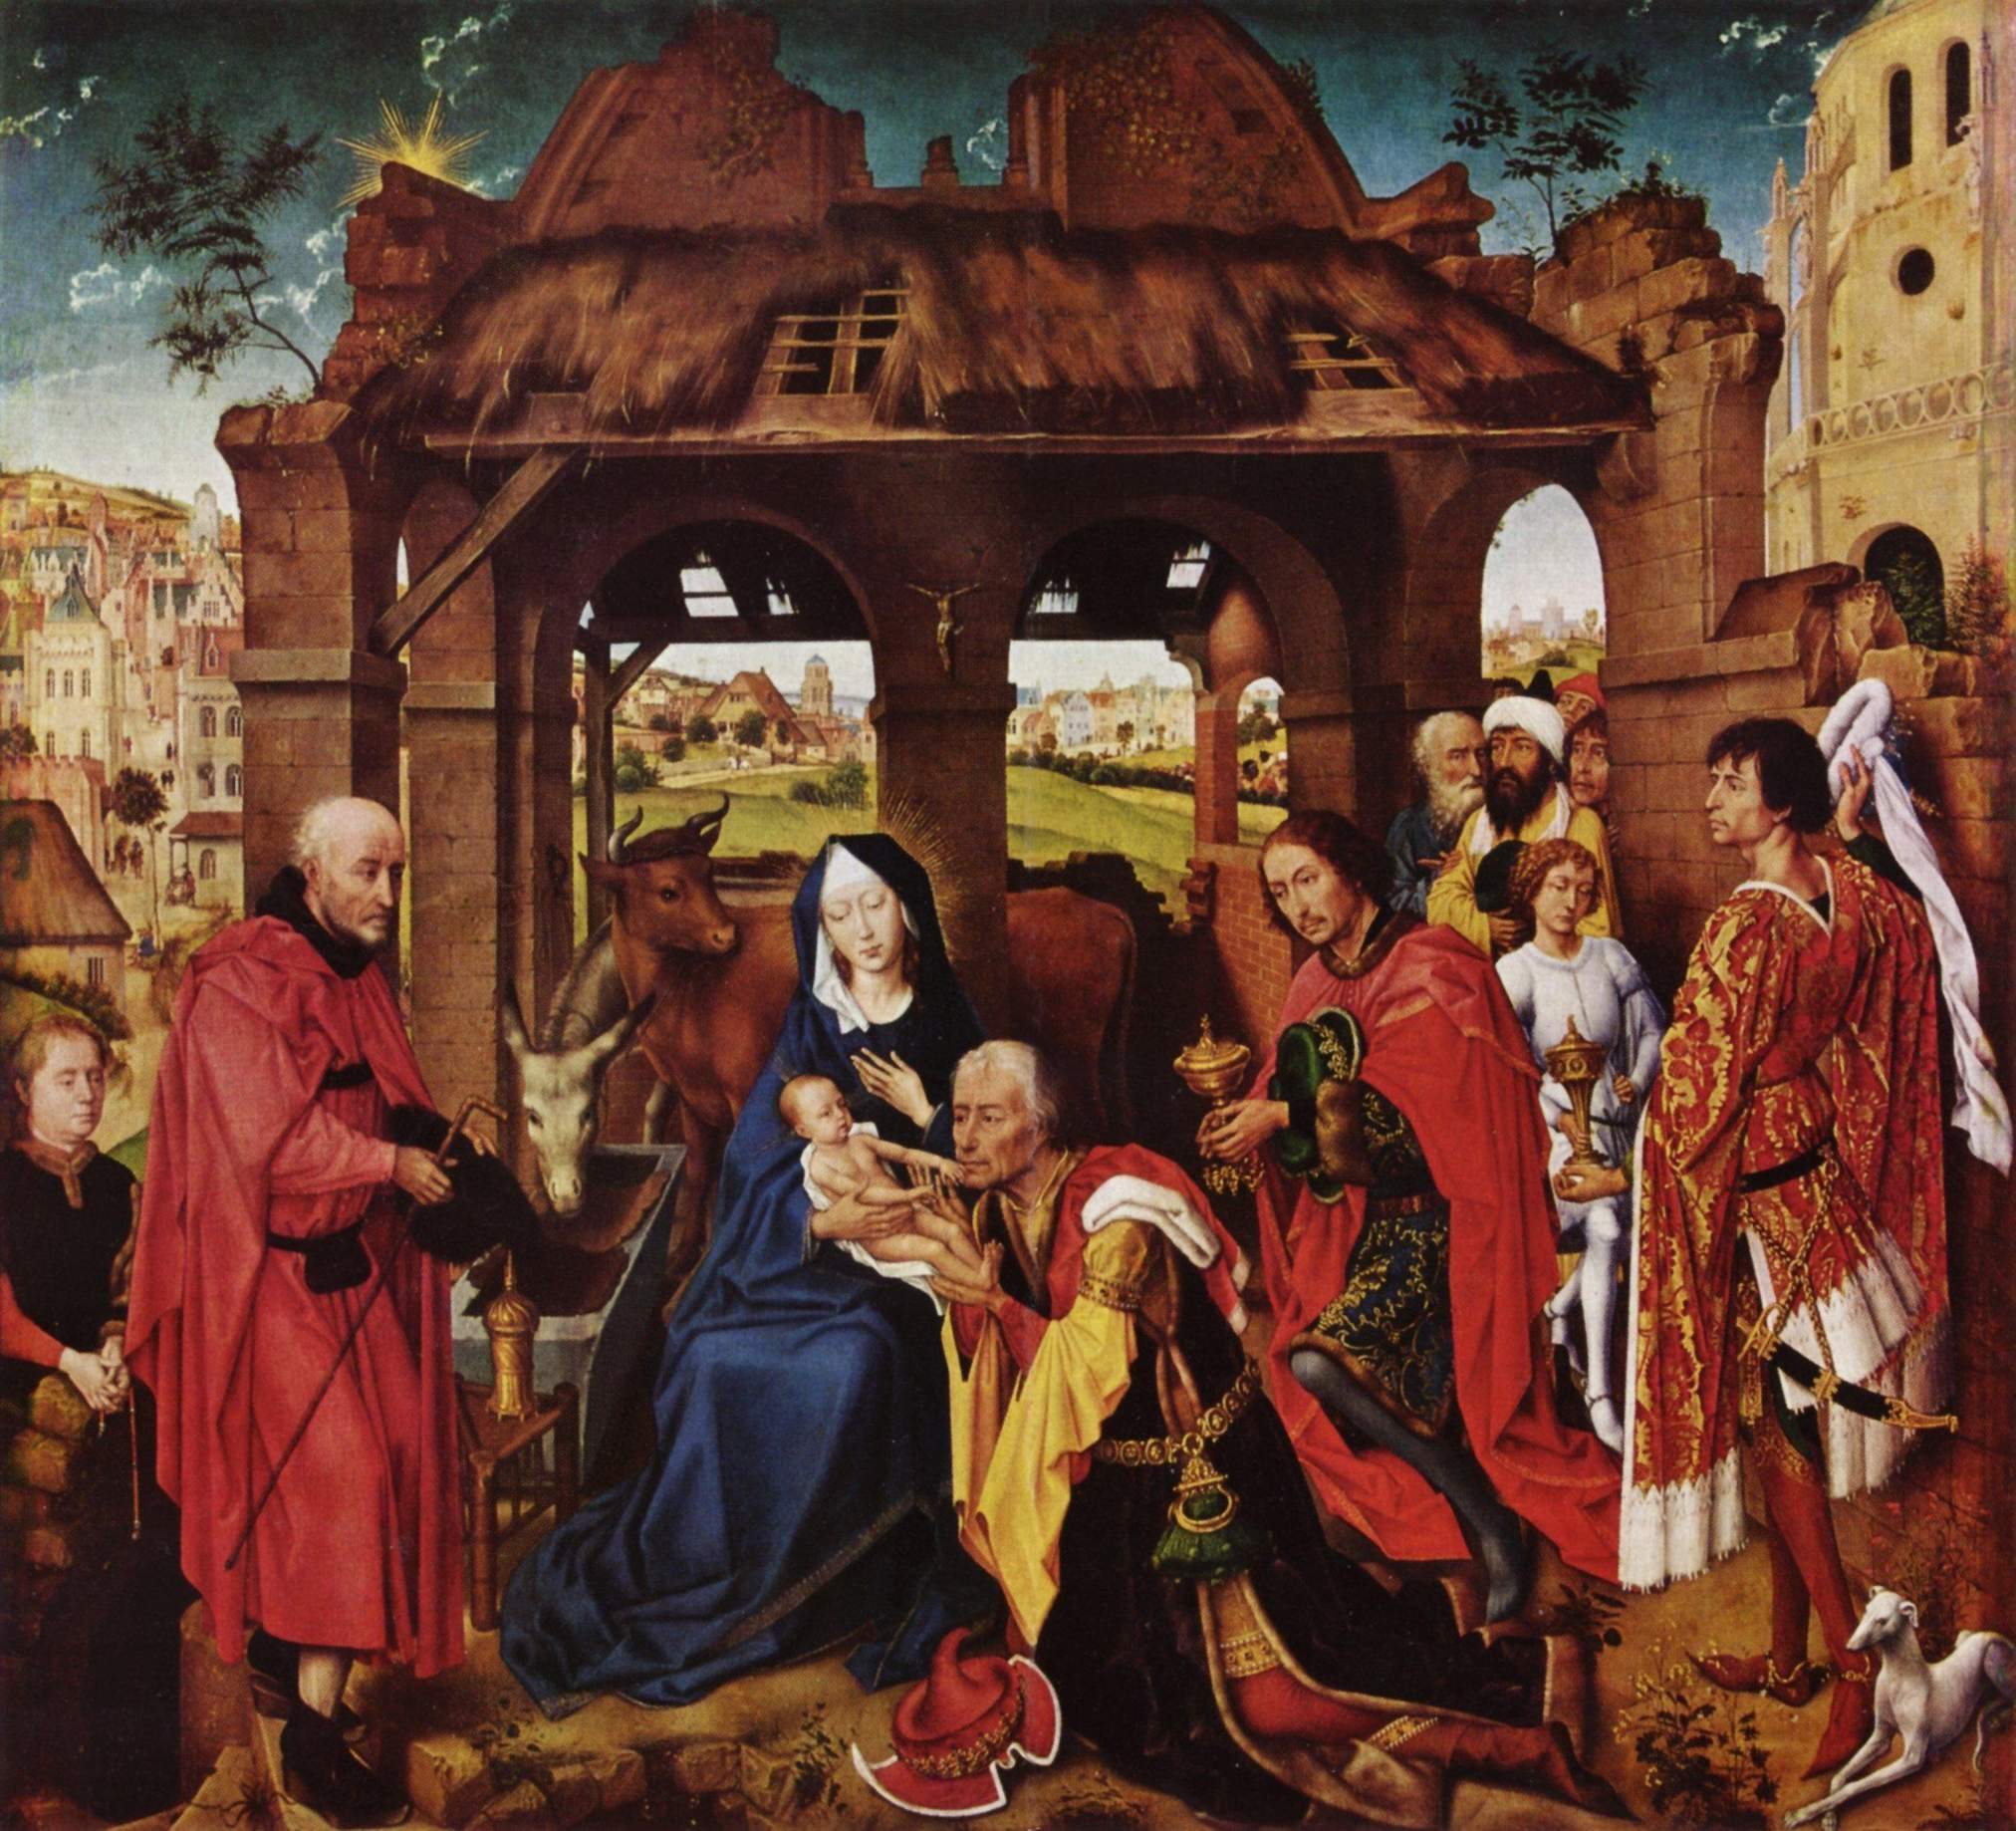 Adoration des mages par Rogier van der Weyden, panneau central du Retable de sainte Colombe, 1444, Munich, Altepinakothek Domaine public via Wikimedia Commons